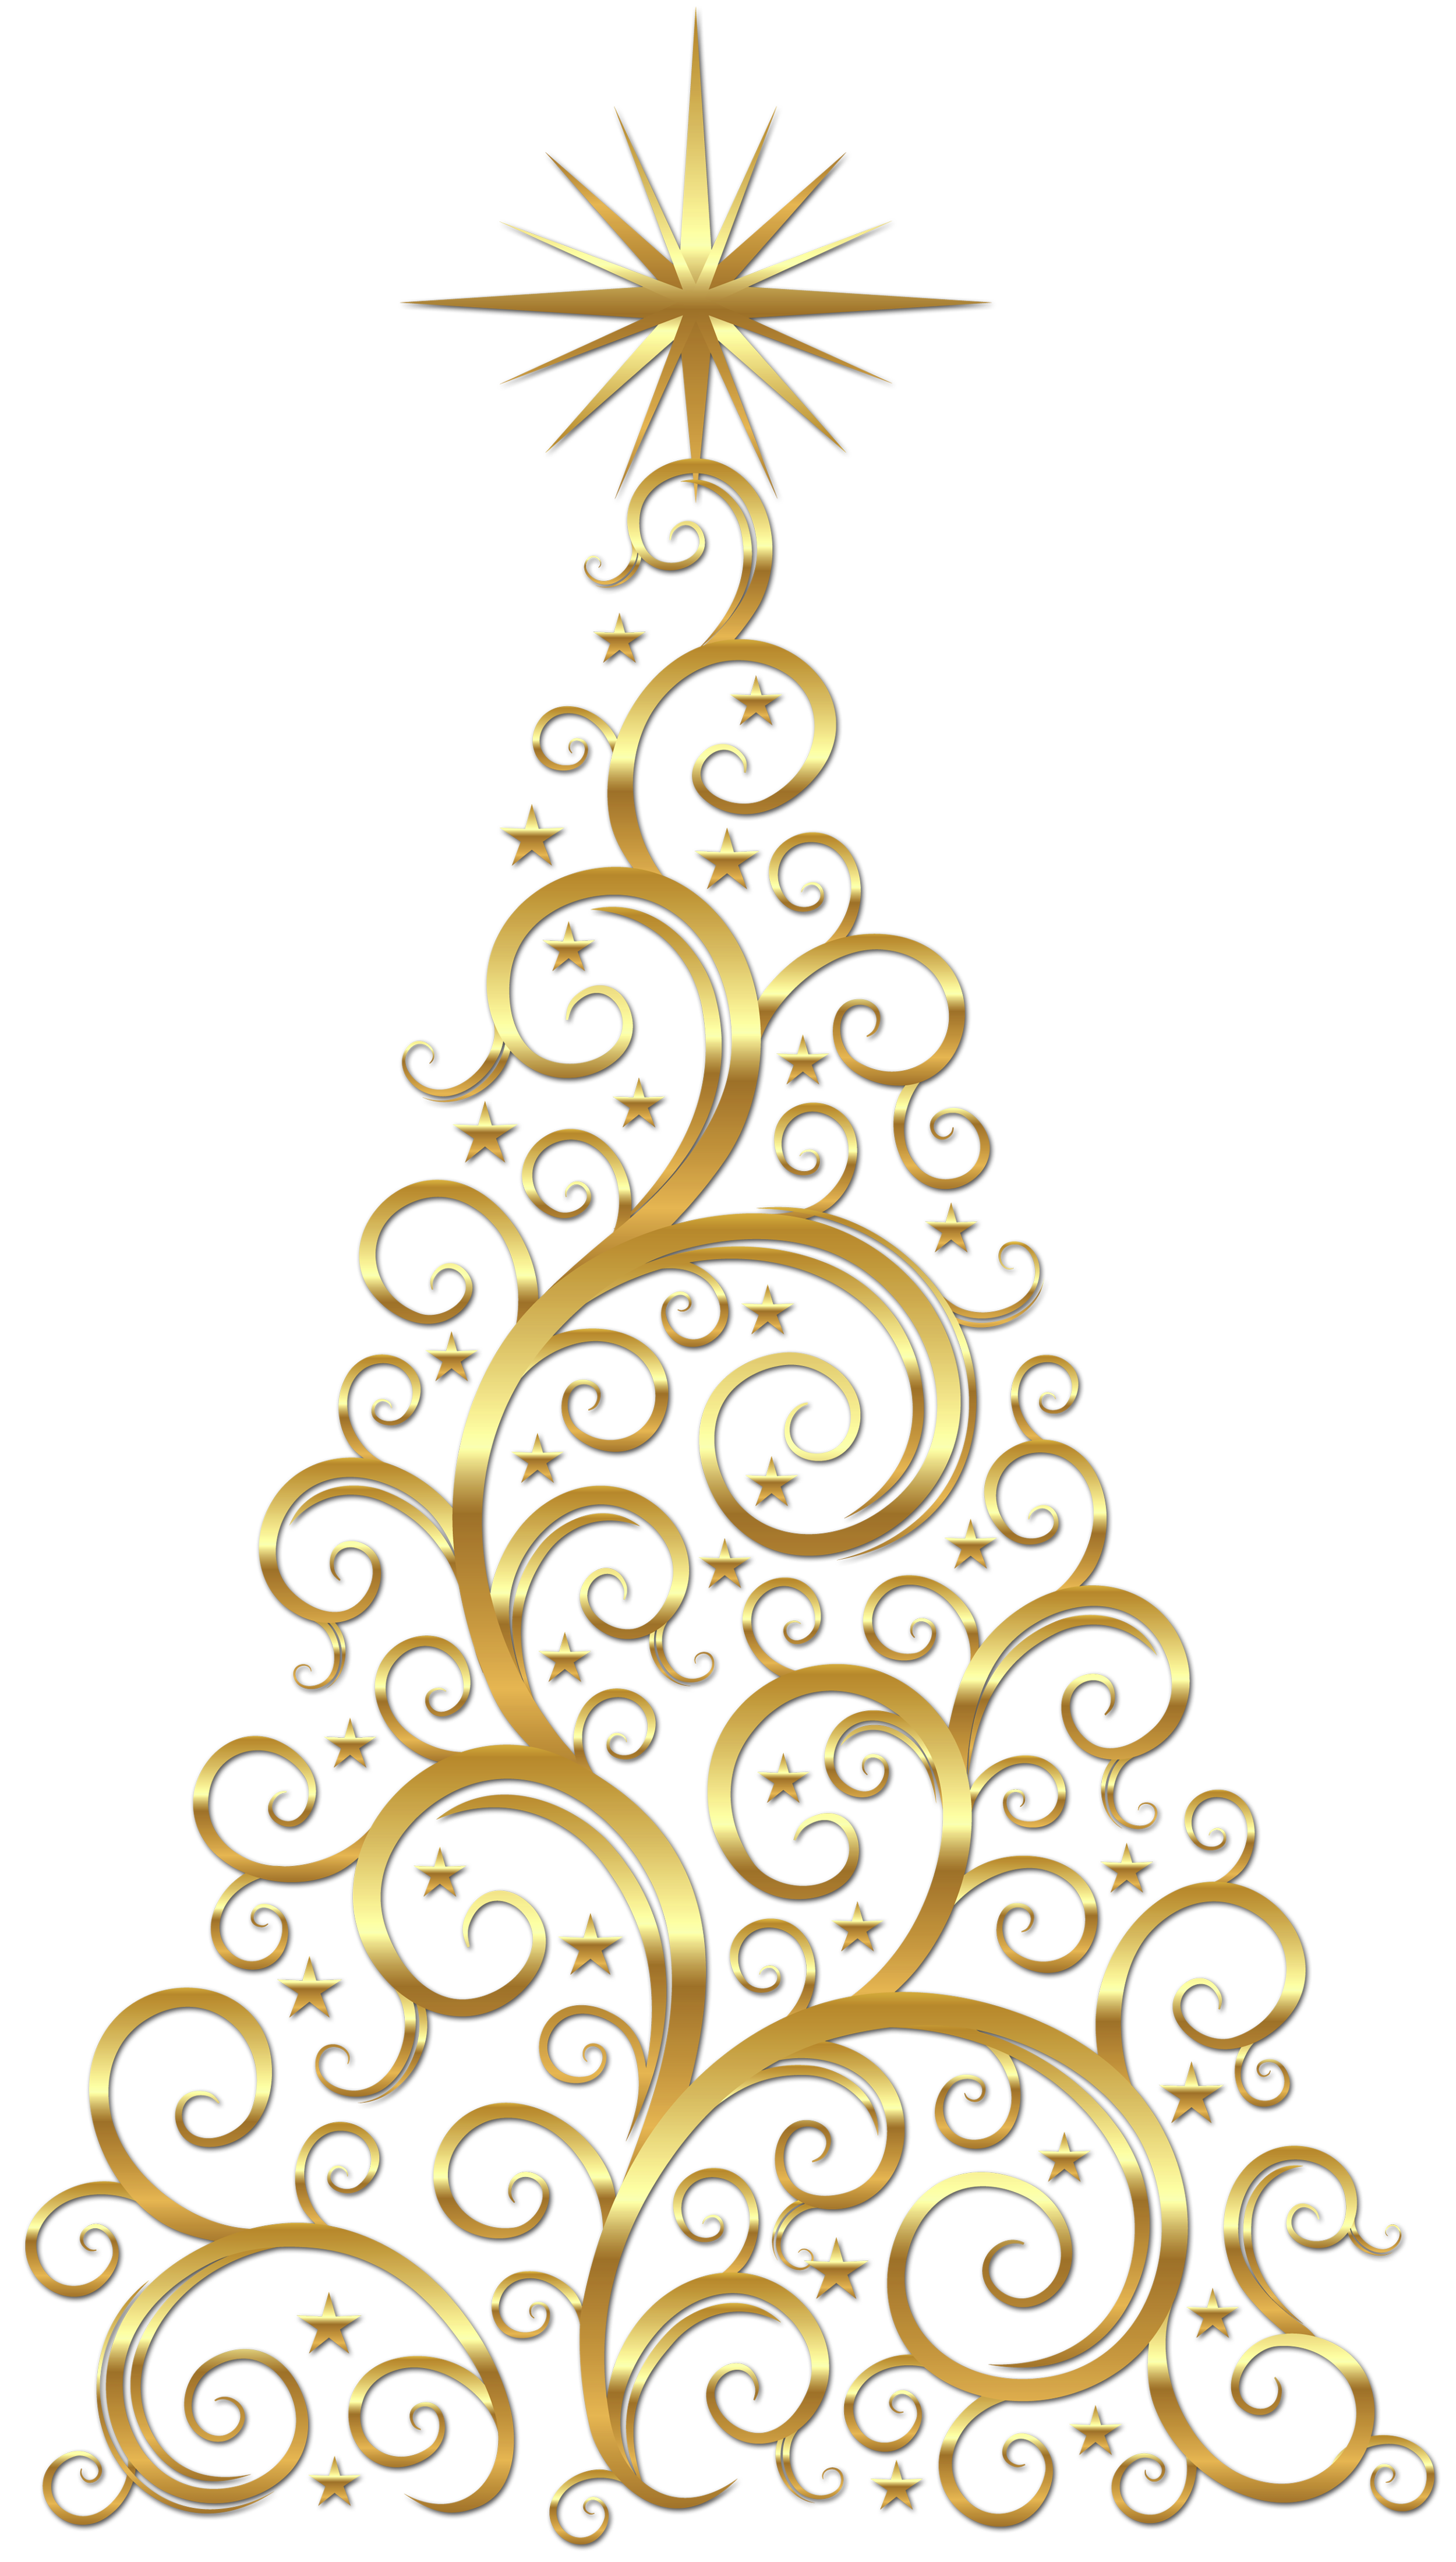 Golden christmas tree clipart clipart black and white stock Transparent Gold Deco Christmas Tree Clipart | Gallery Yopriceville ... clipart black and white stock